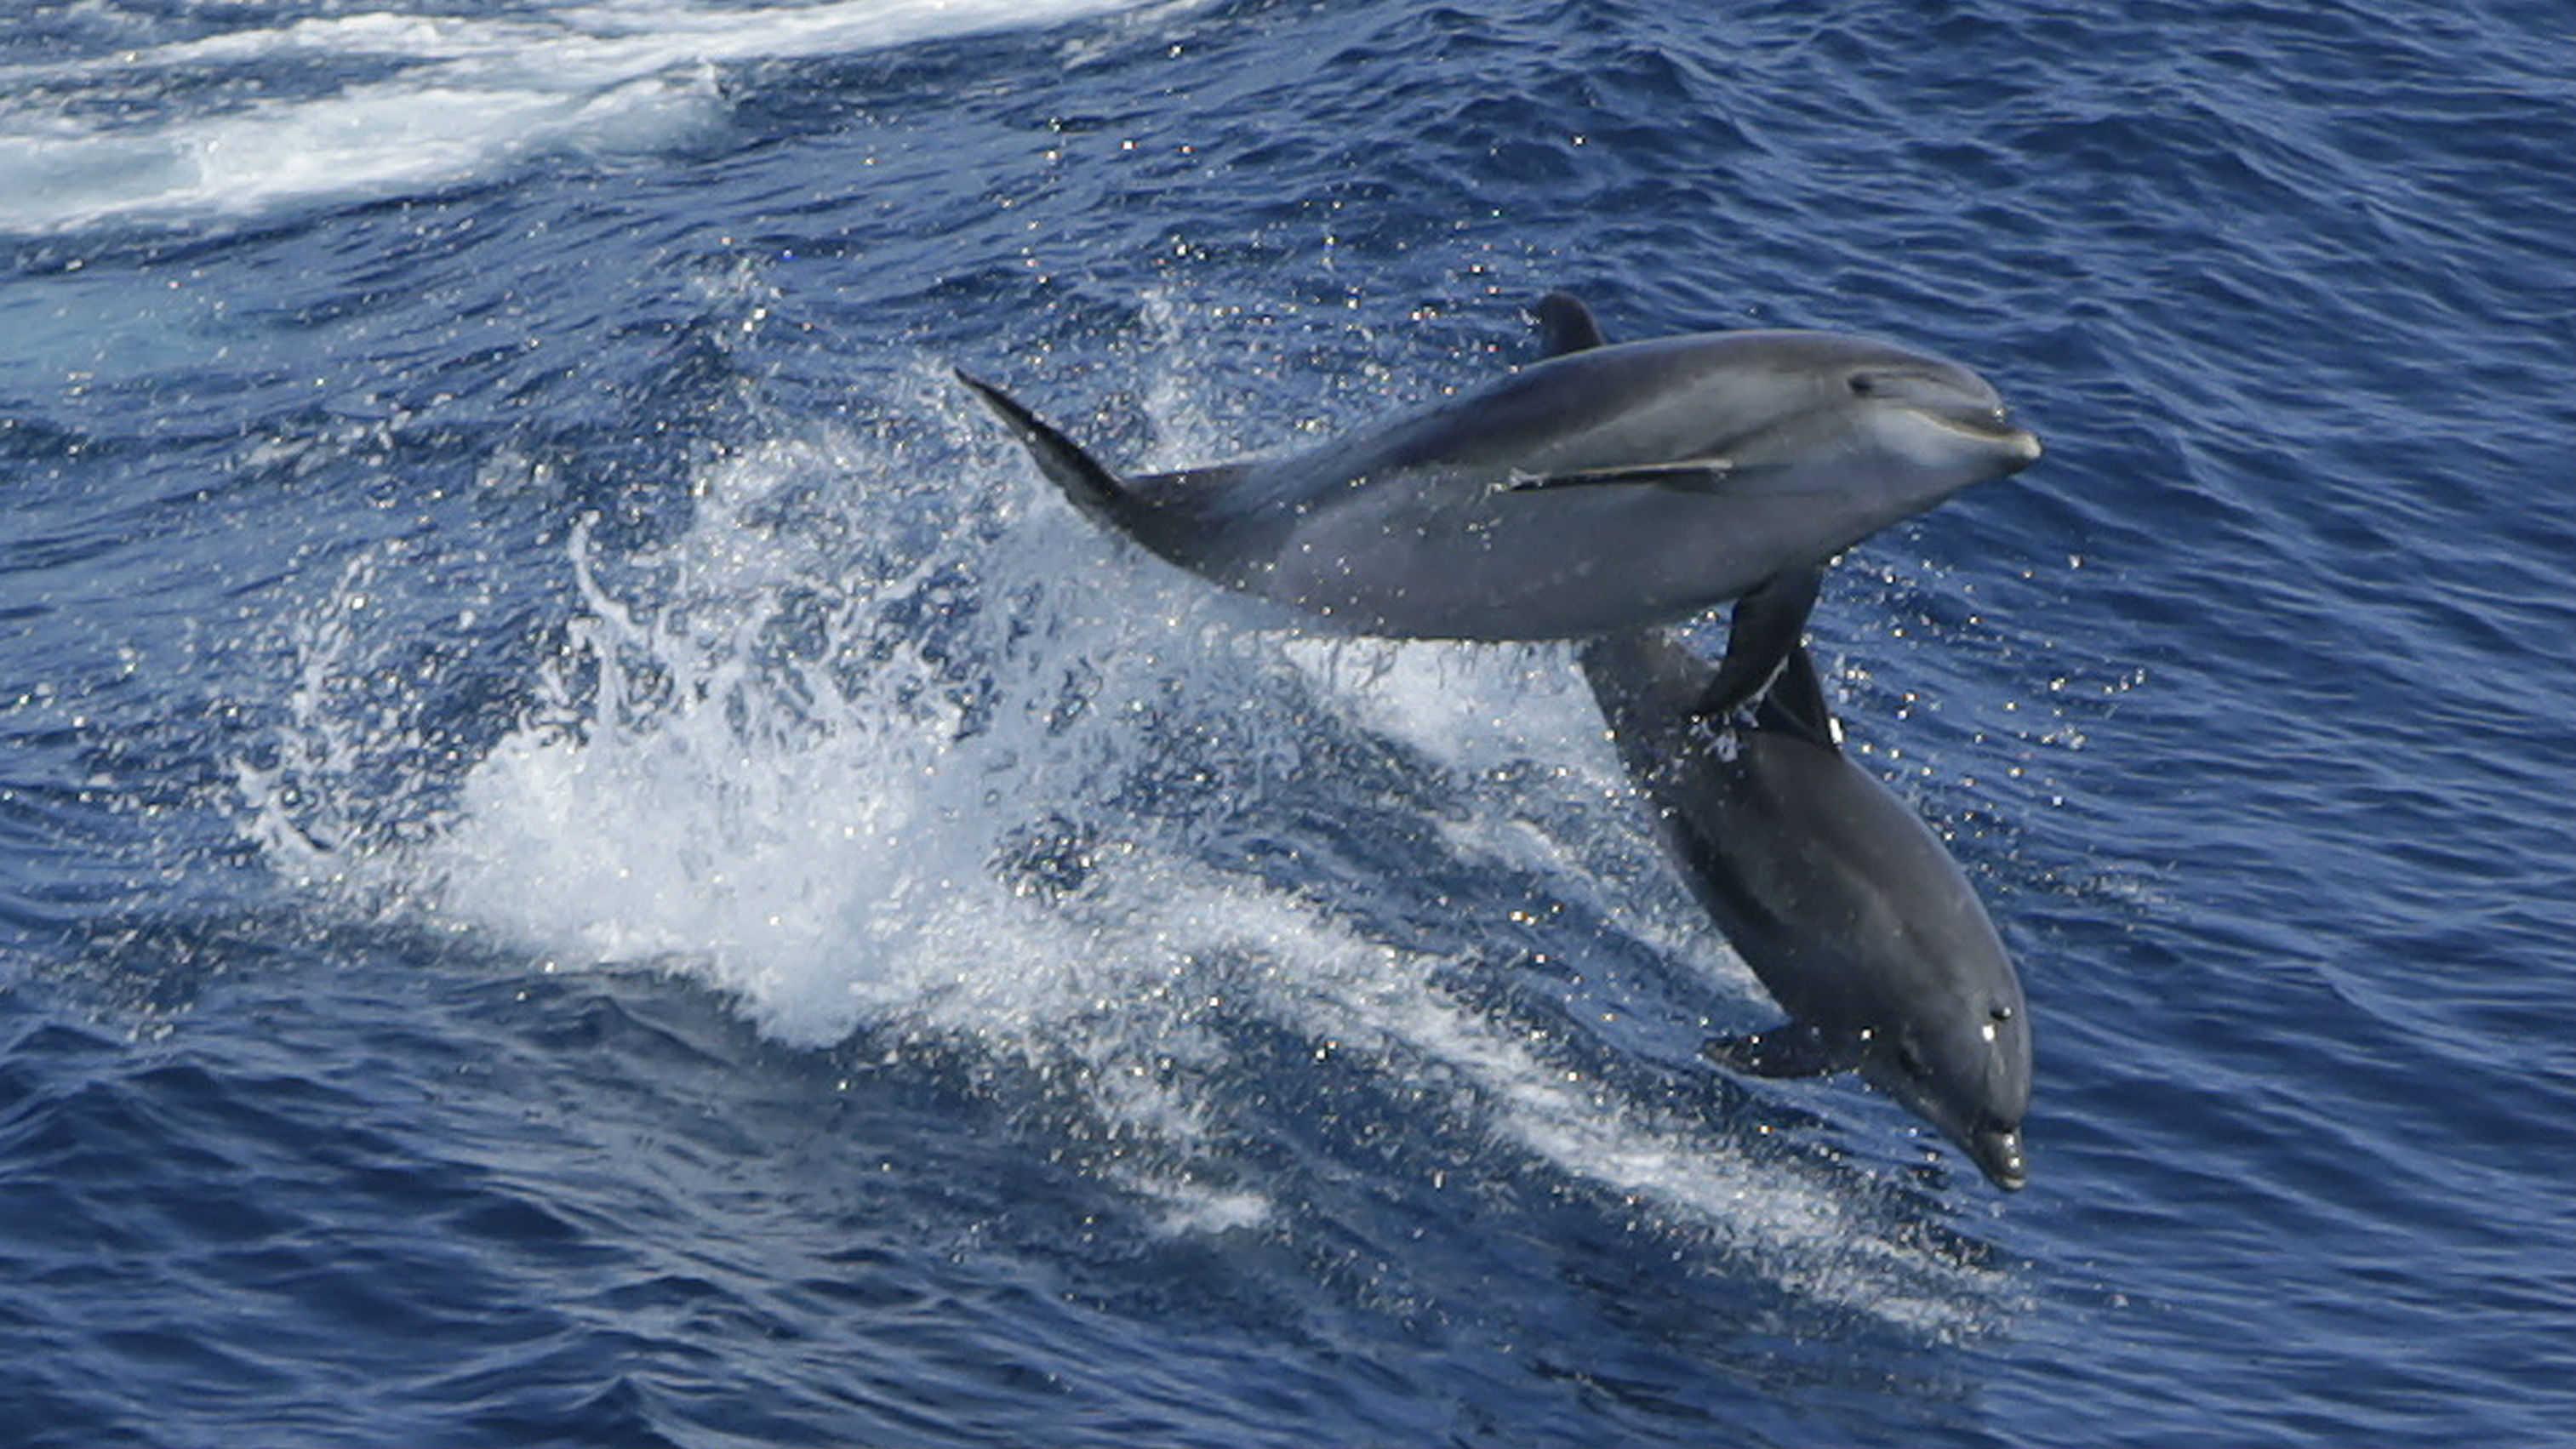 A pair of dolphins leap in the wake of Royal Caribbean cruise line ship 'Grandeur of the Seas' July 18, 2013 in the Atlantic Ocean between Bermuda and the United States main land